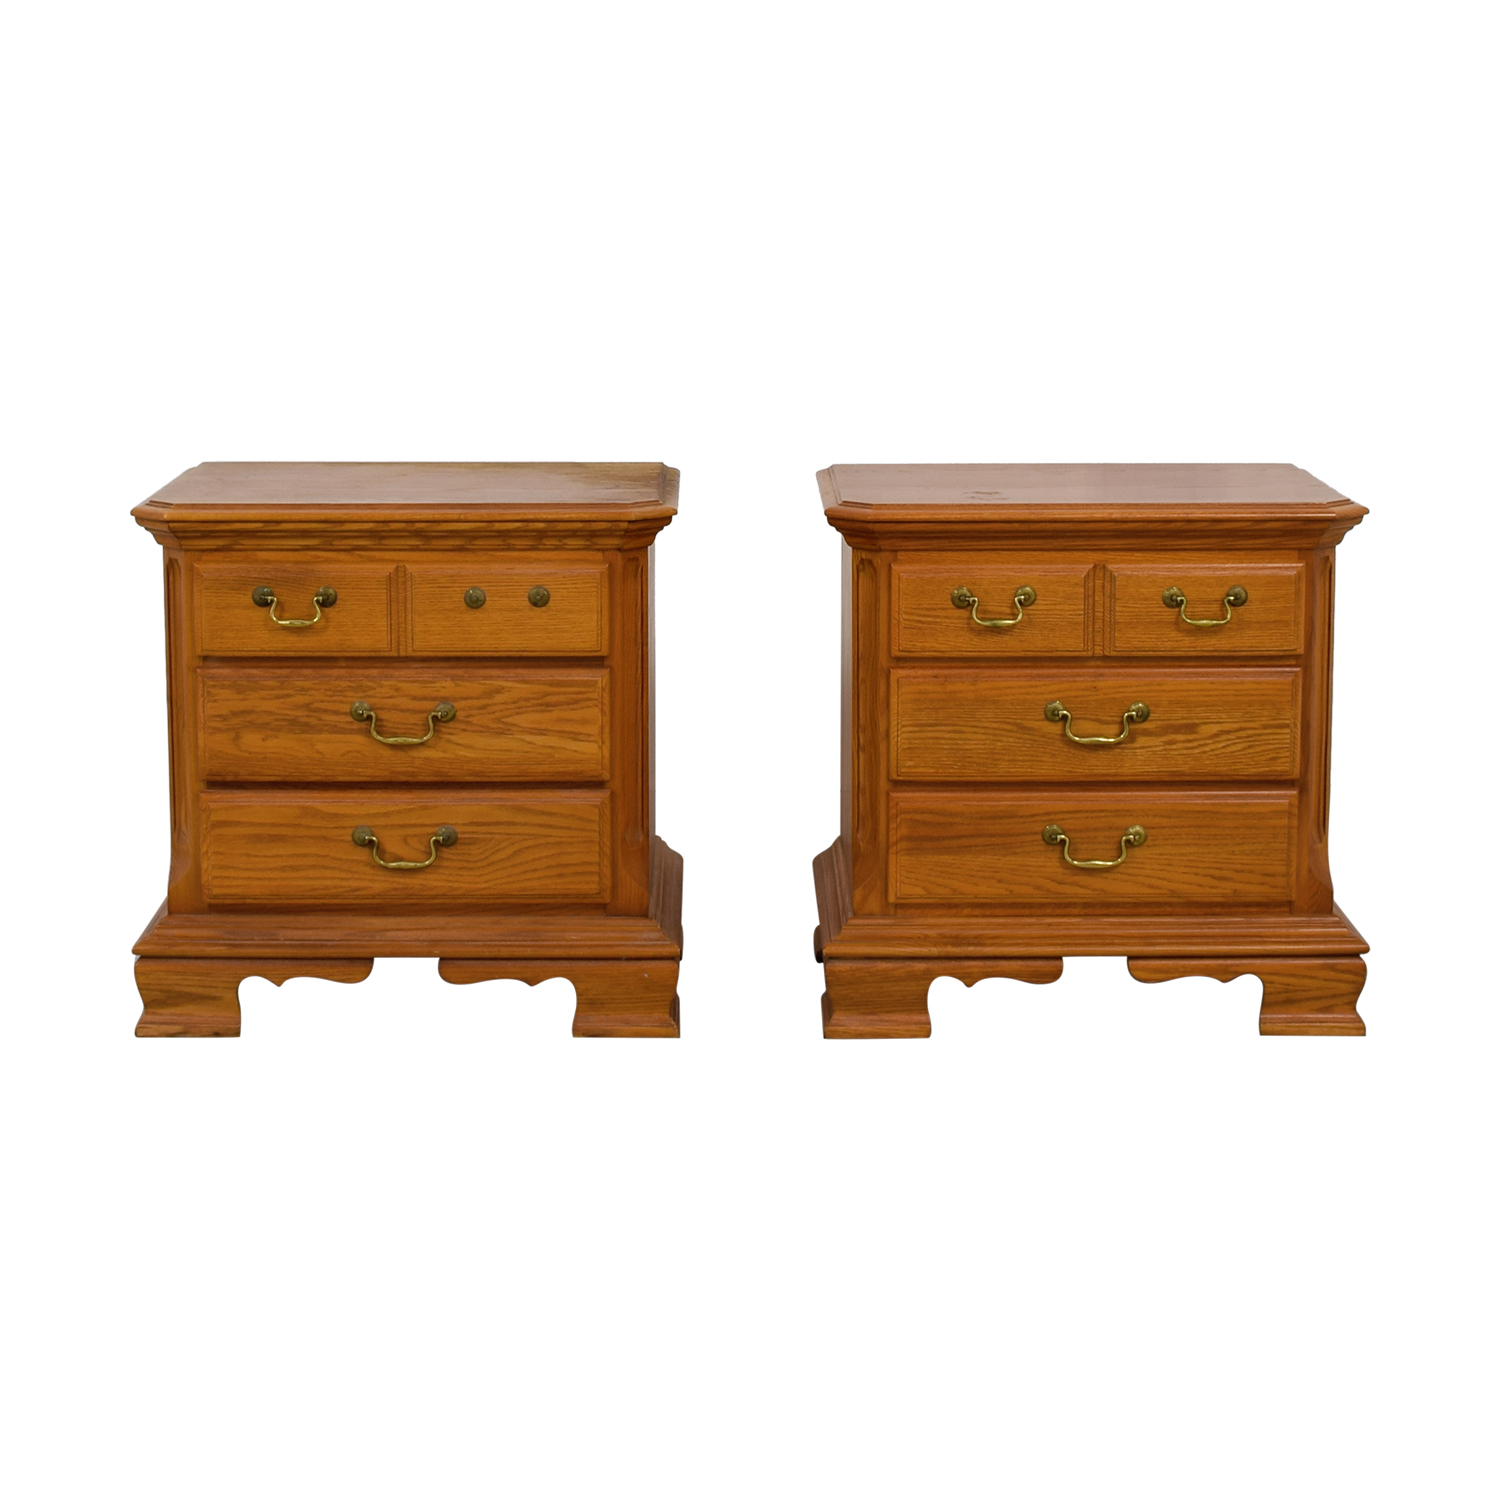 Sumter Cabinet Company Night Stands / End Tables